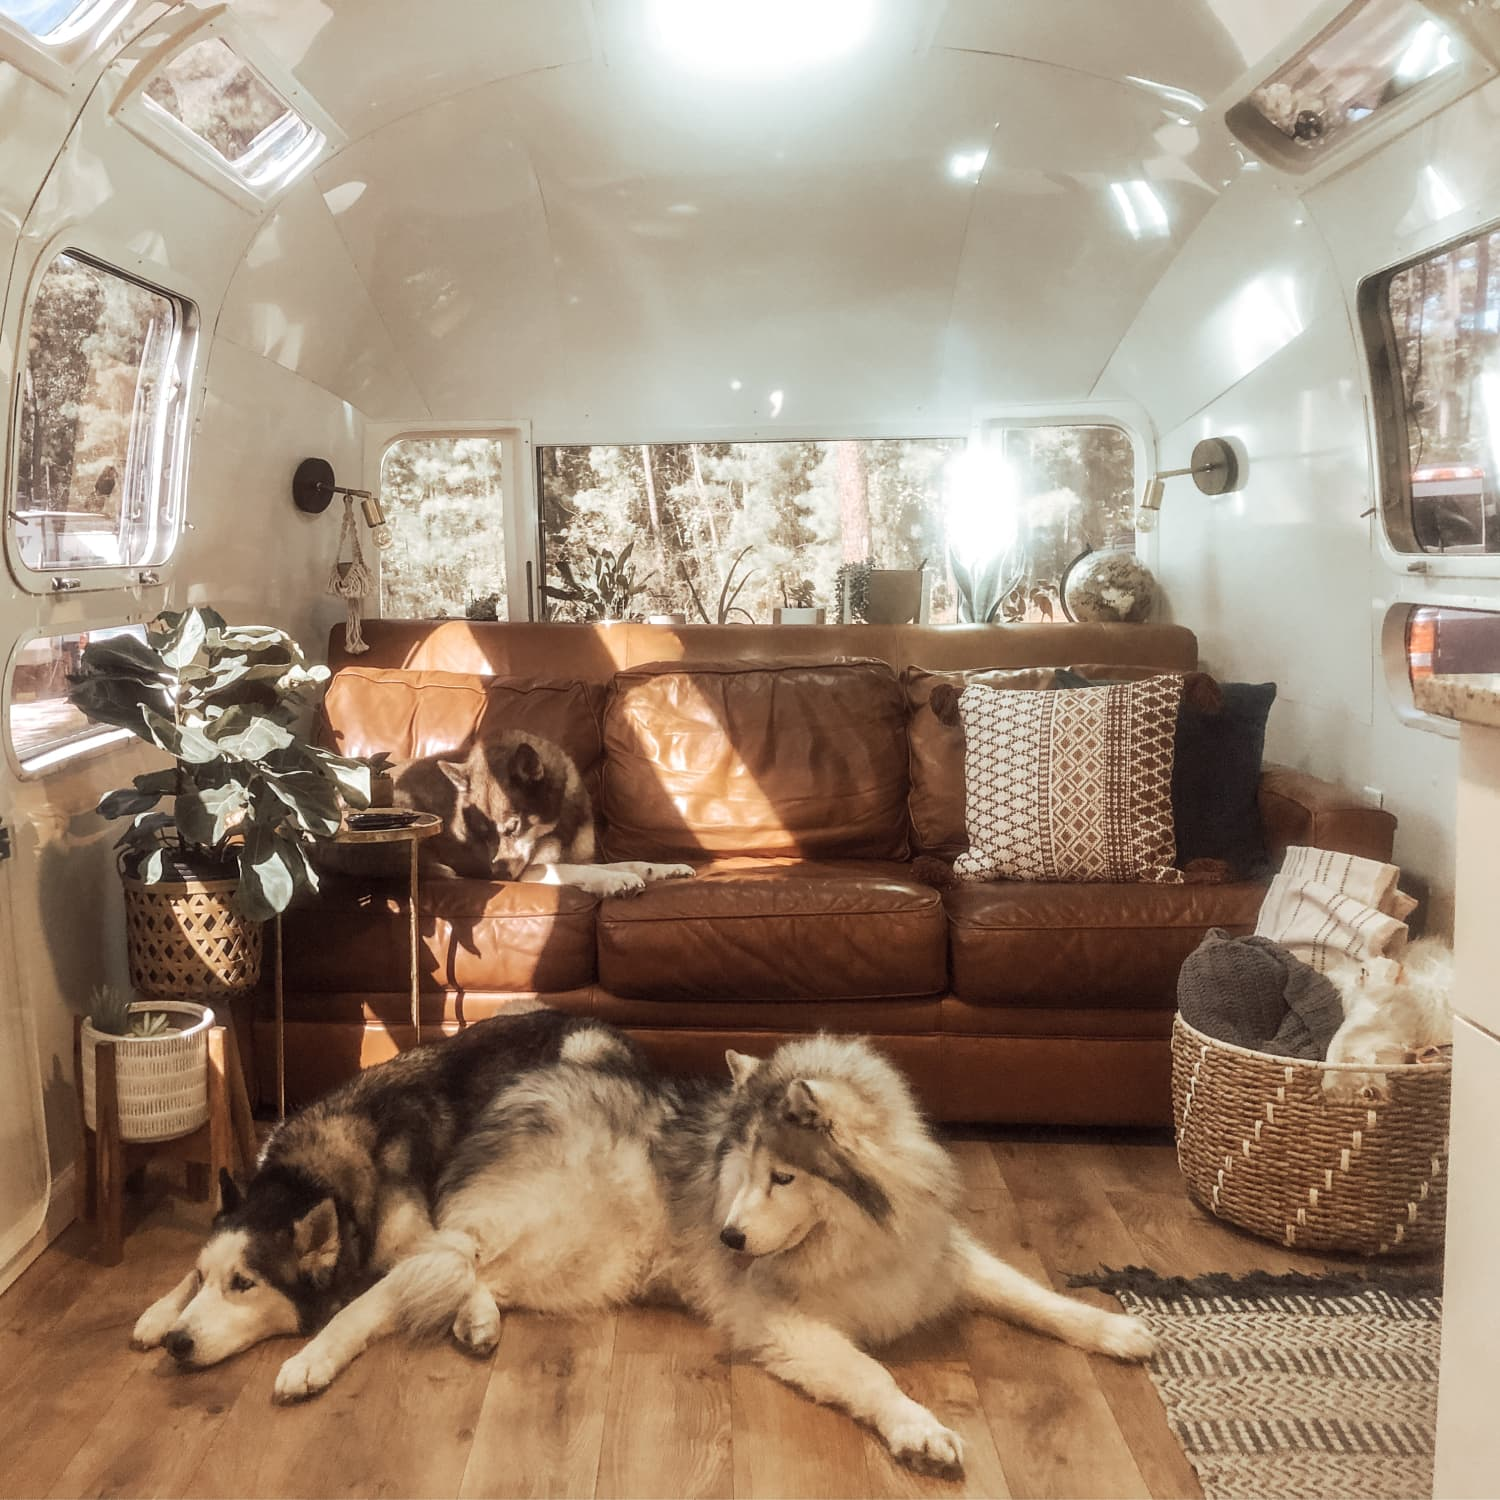 Stupendous 1972 Airstream Gut Renovation Tiny House Tour Apartment Creativecarmelina Interior Chair Design Creativecarmelinacom